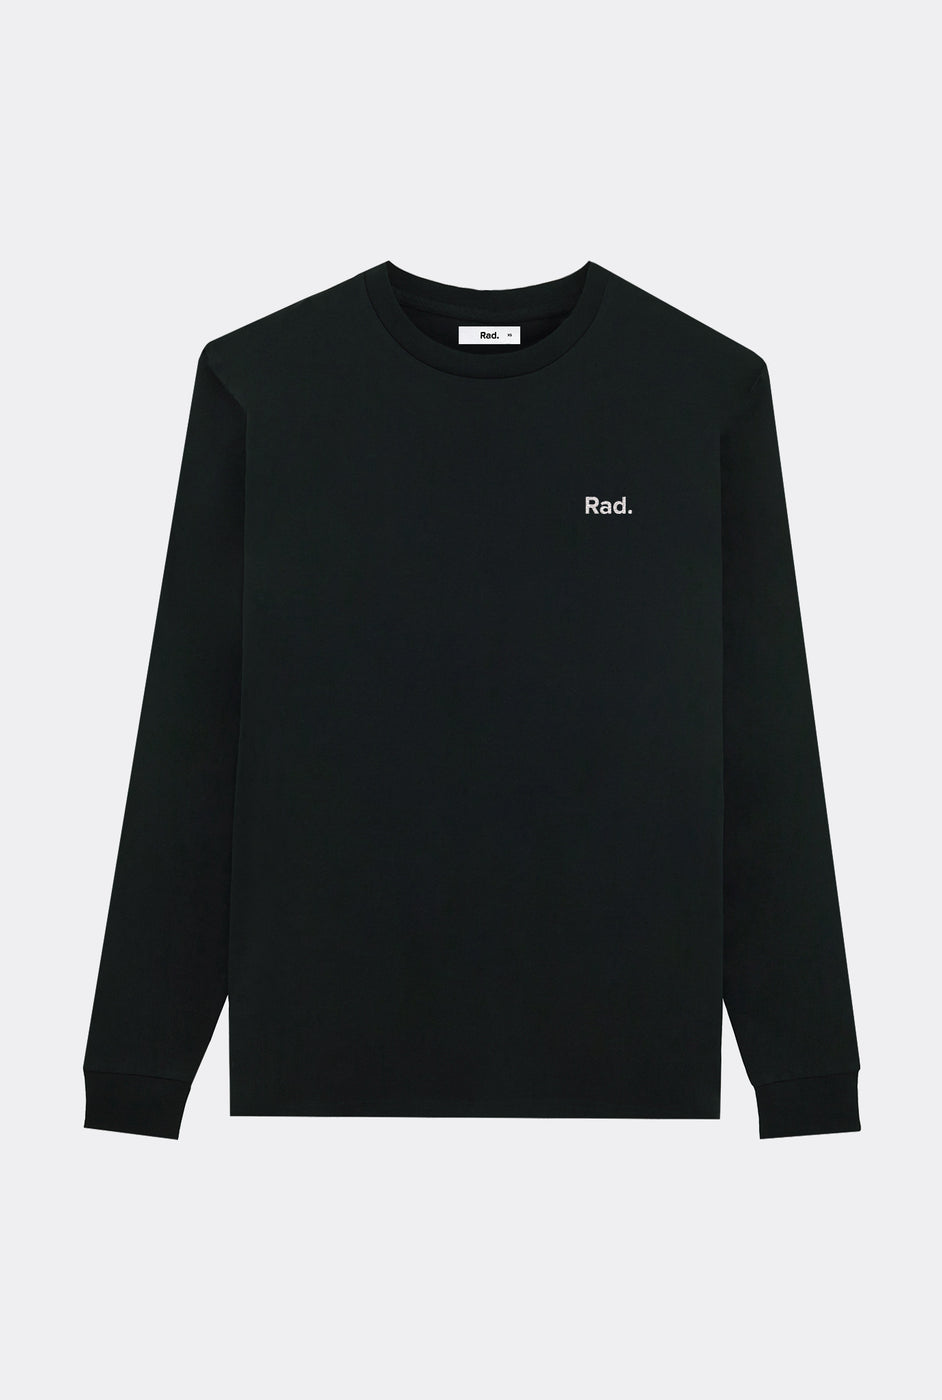 T-Shirt L/S Classic Rad - Embroidered